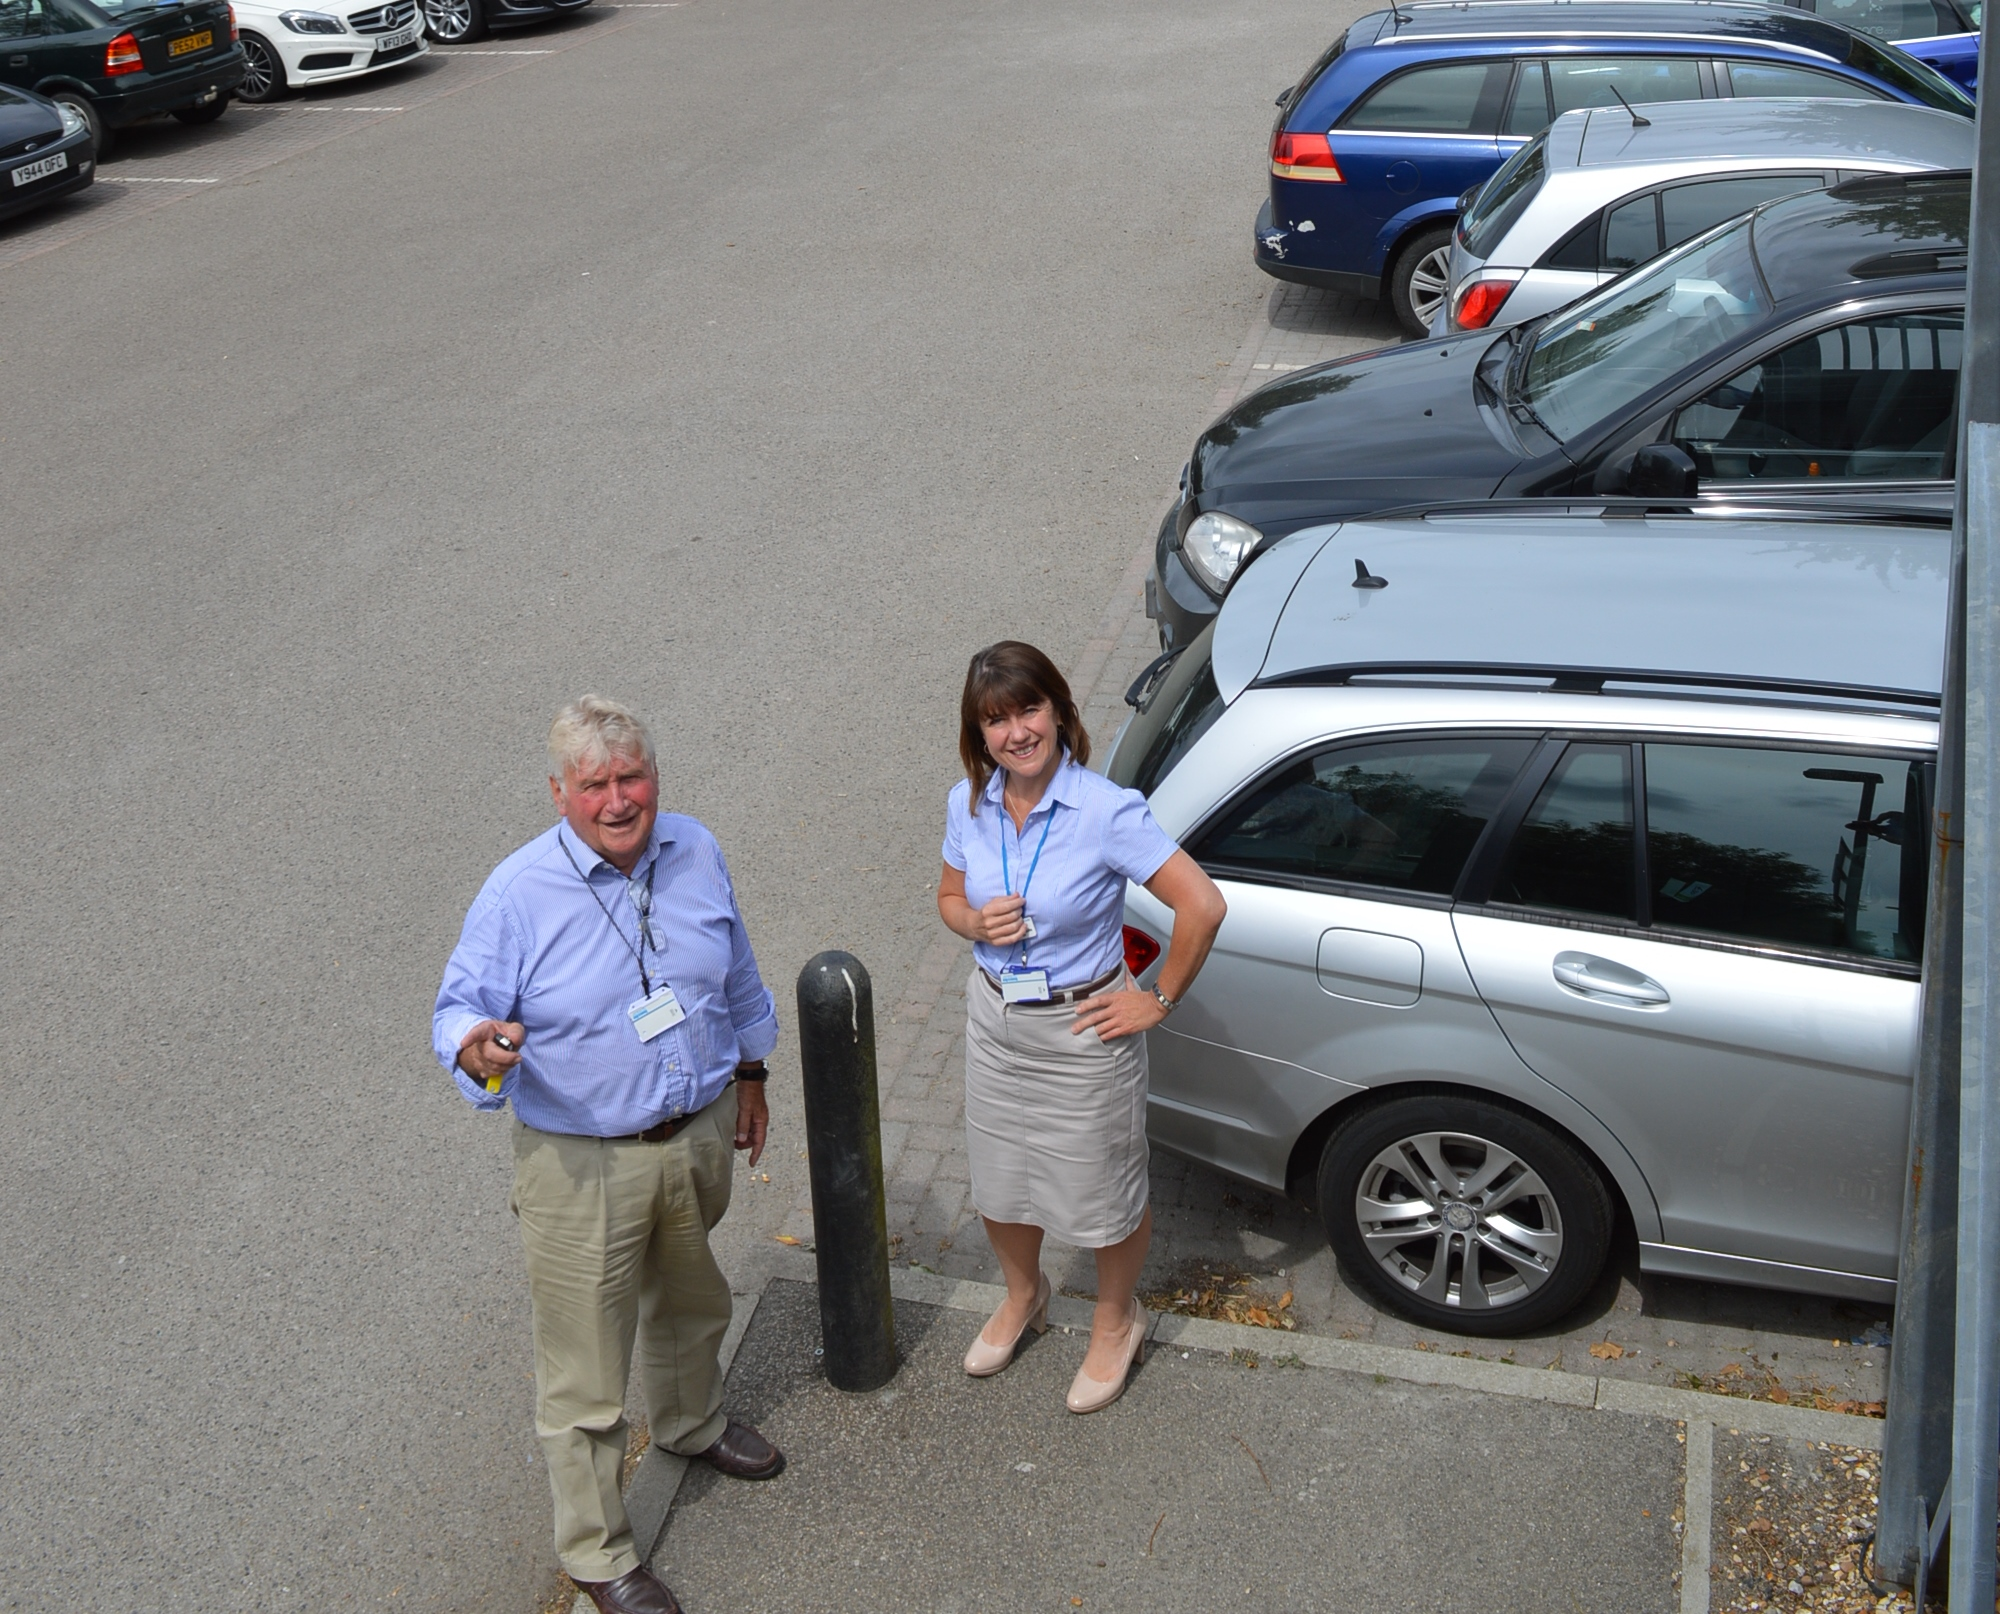 Car park for commuters nr Ely